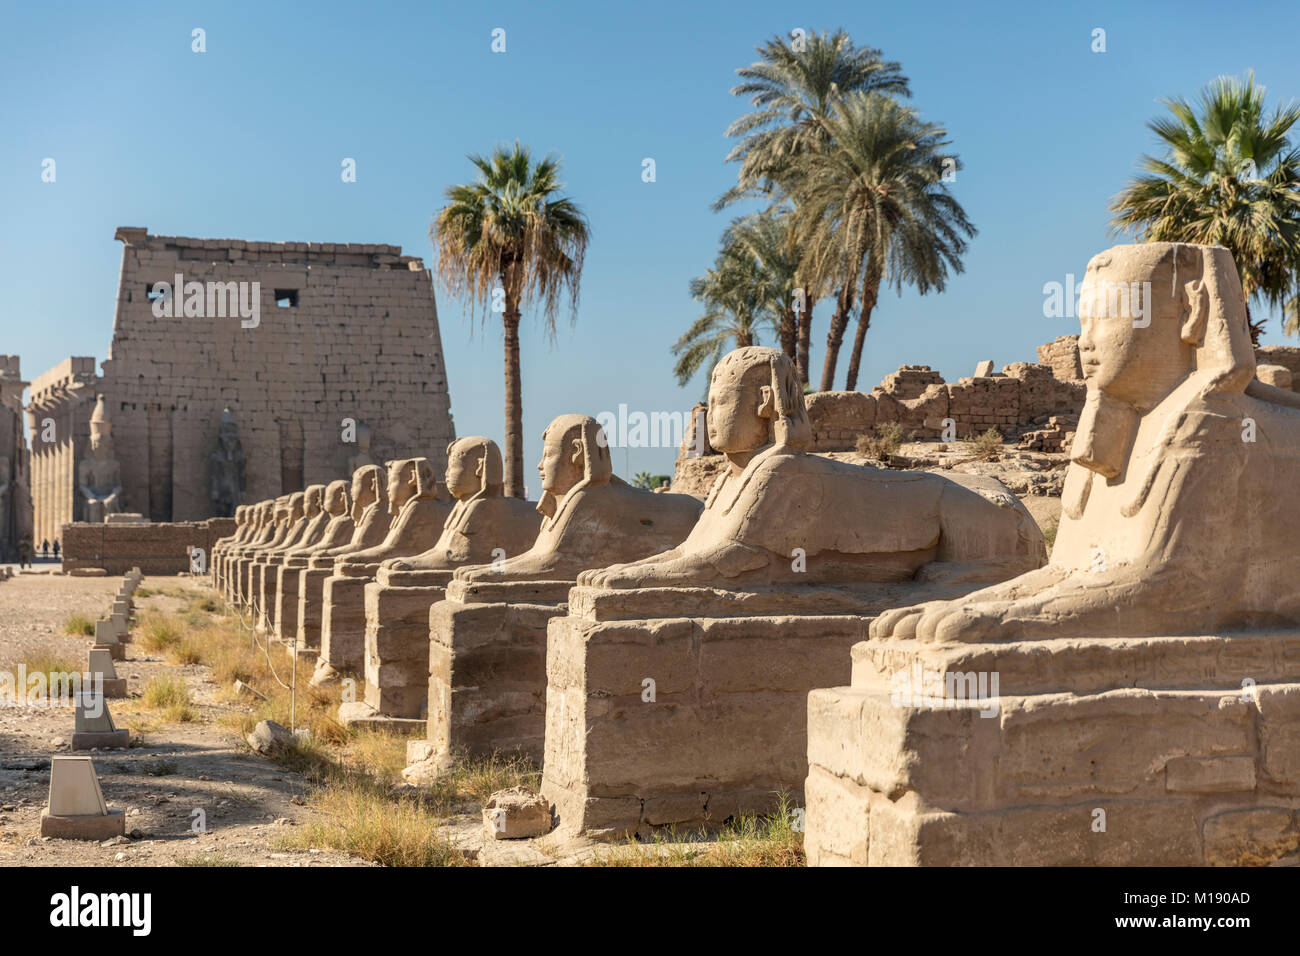 Le temple de Louxor, Louxor, Egypte Photo Stock